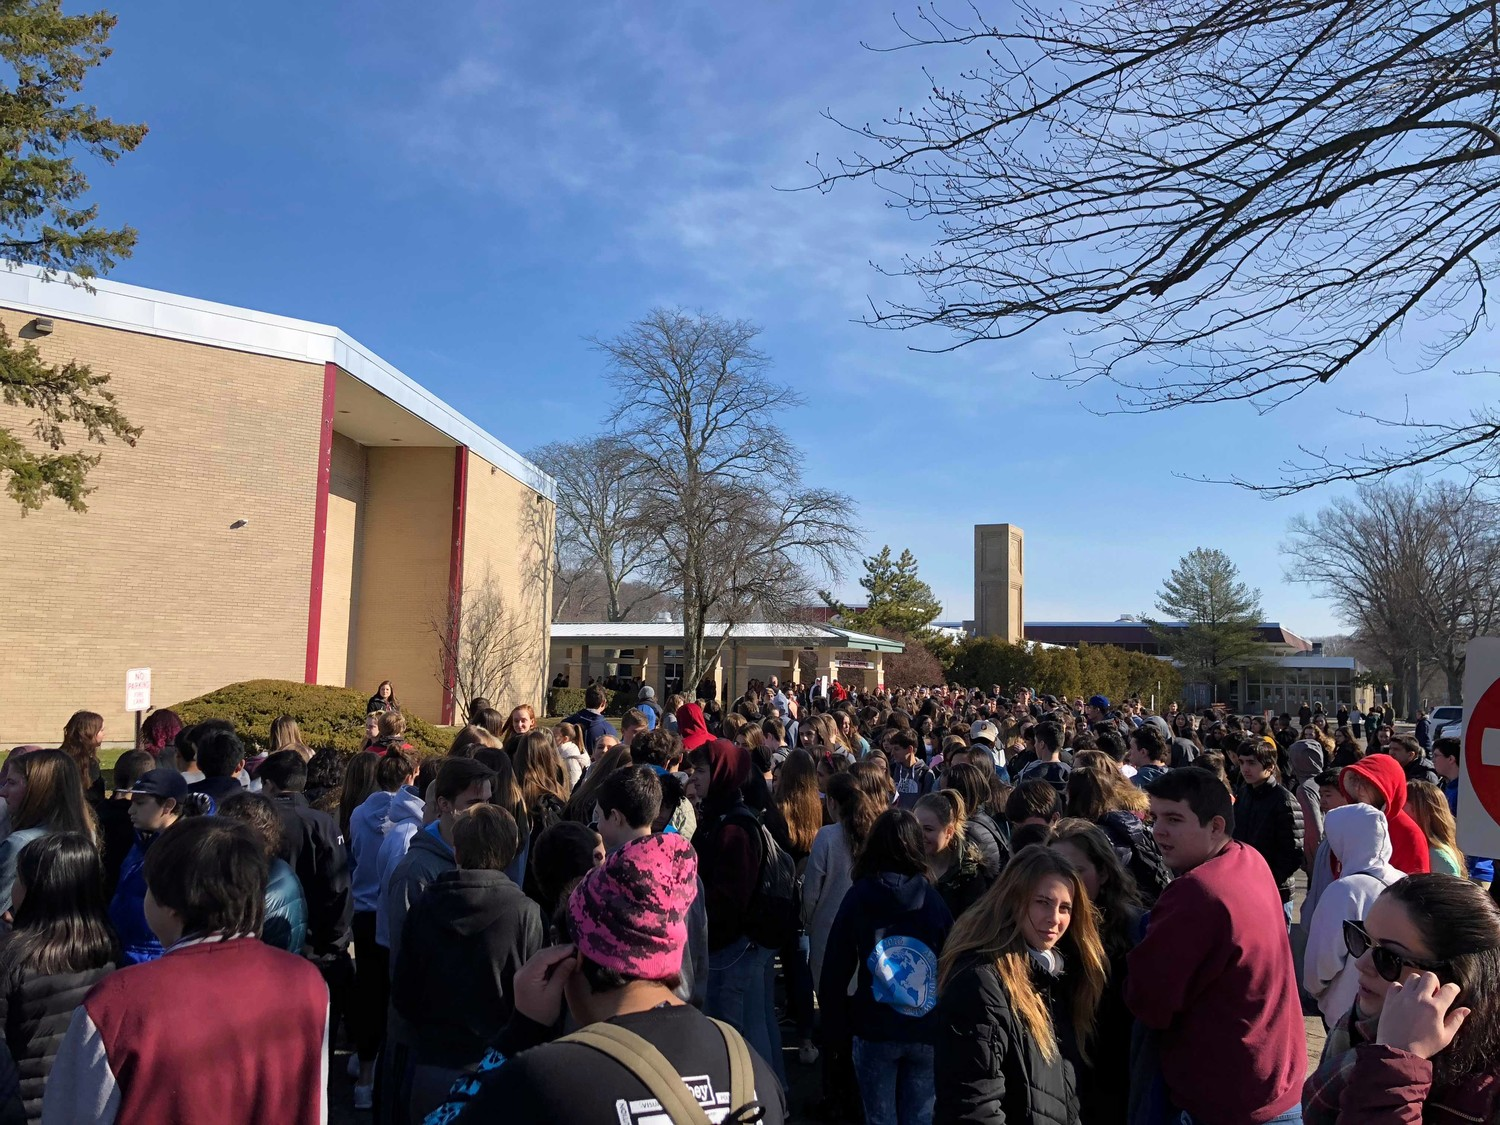 Students left the comfort of their classrooms and walked out in solidarity with thousands of other students across America to remember the victims of the Parkland, Fla., shooting.